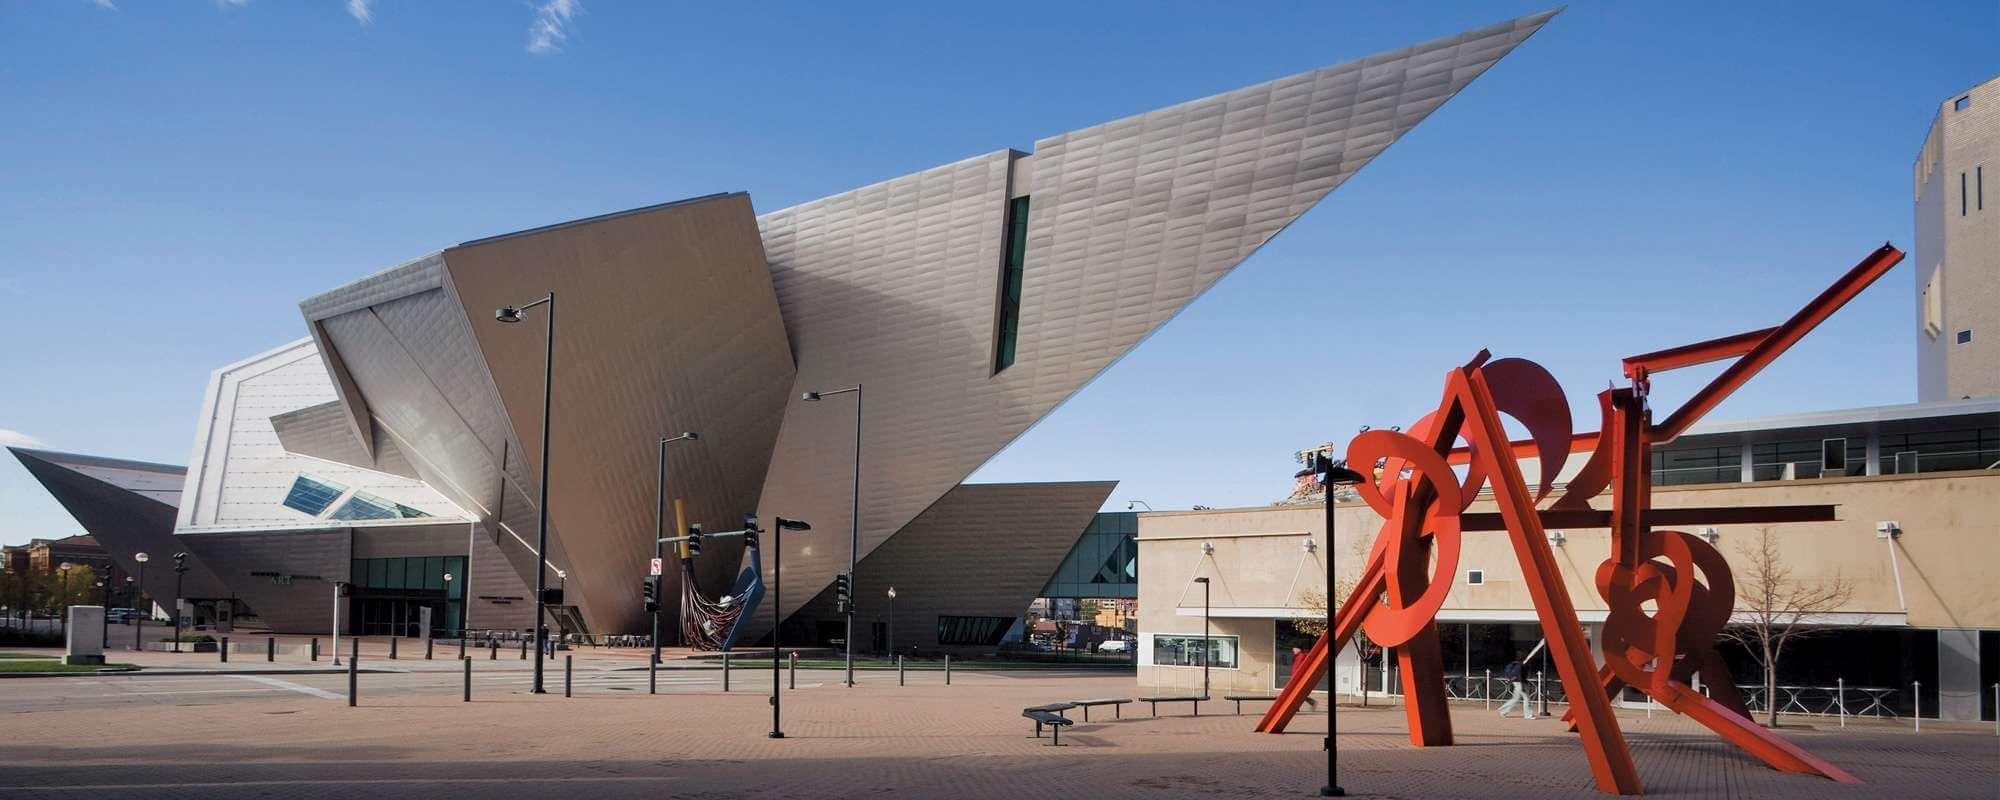 Denver Art Museum Things to do in Denver